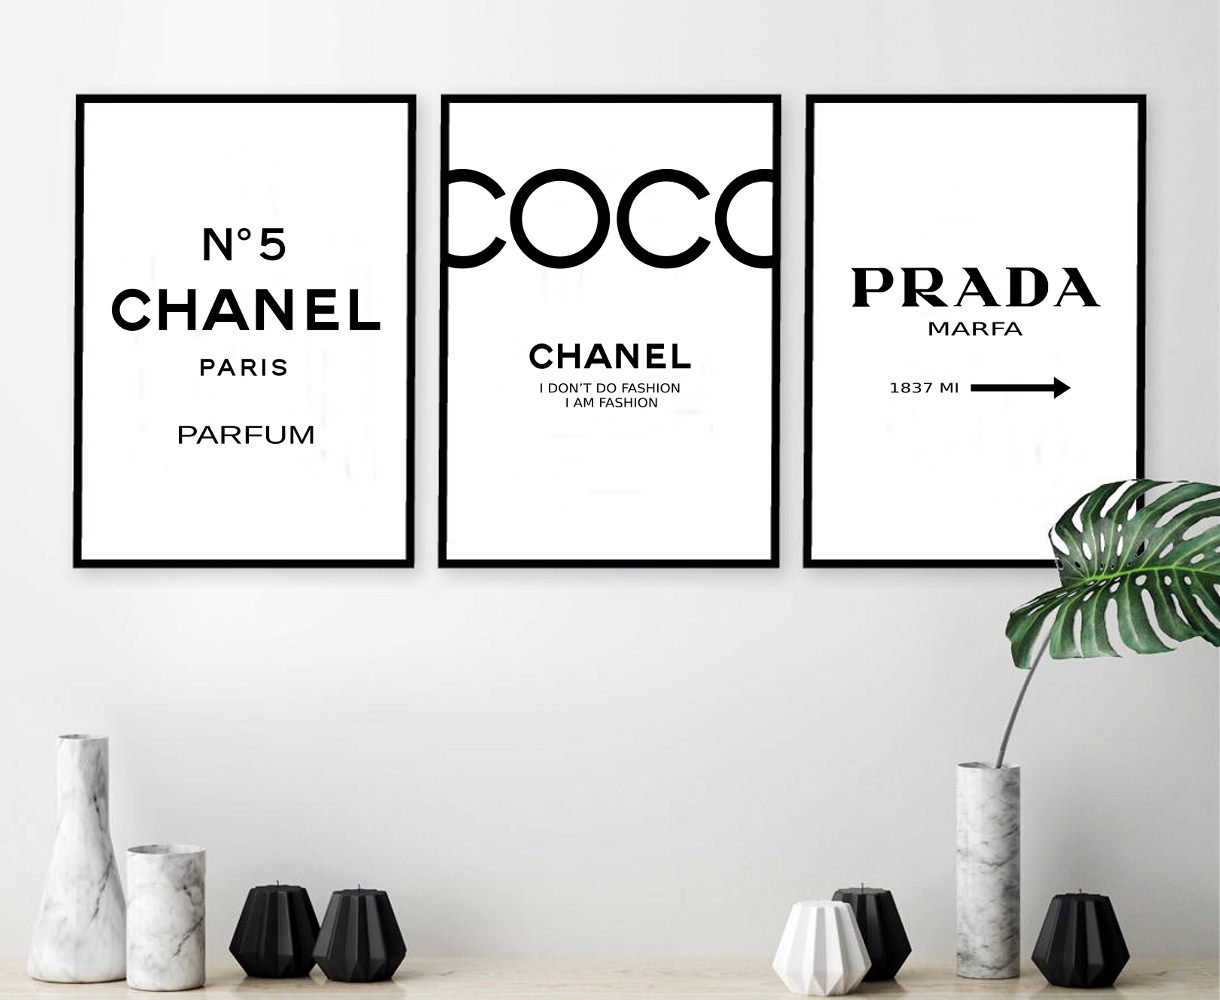 91e0ab310c83a Set of 3 Inspired Coco Chanel Art Print Poster, Chanel Prints, Prada  Prints, Prada Marfa Poster, Chanel Set, Chanel Decor, Chanel Print Set. 142